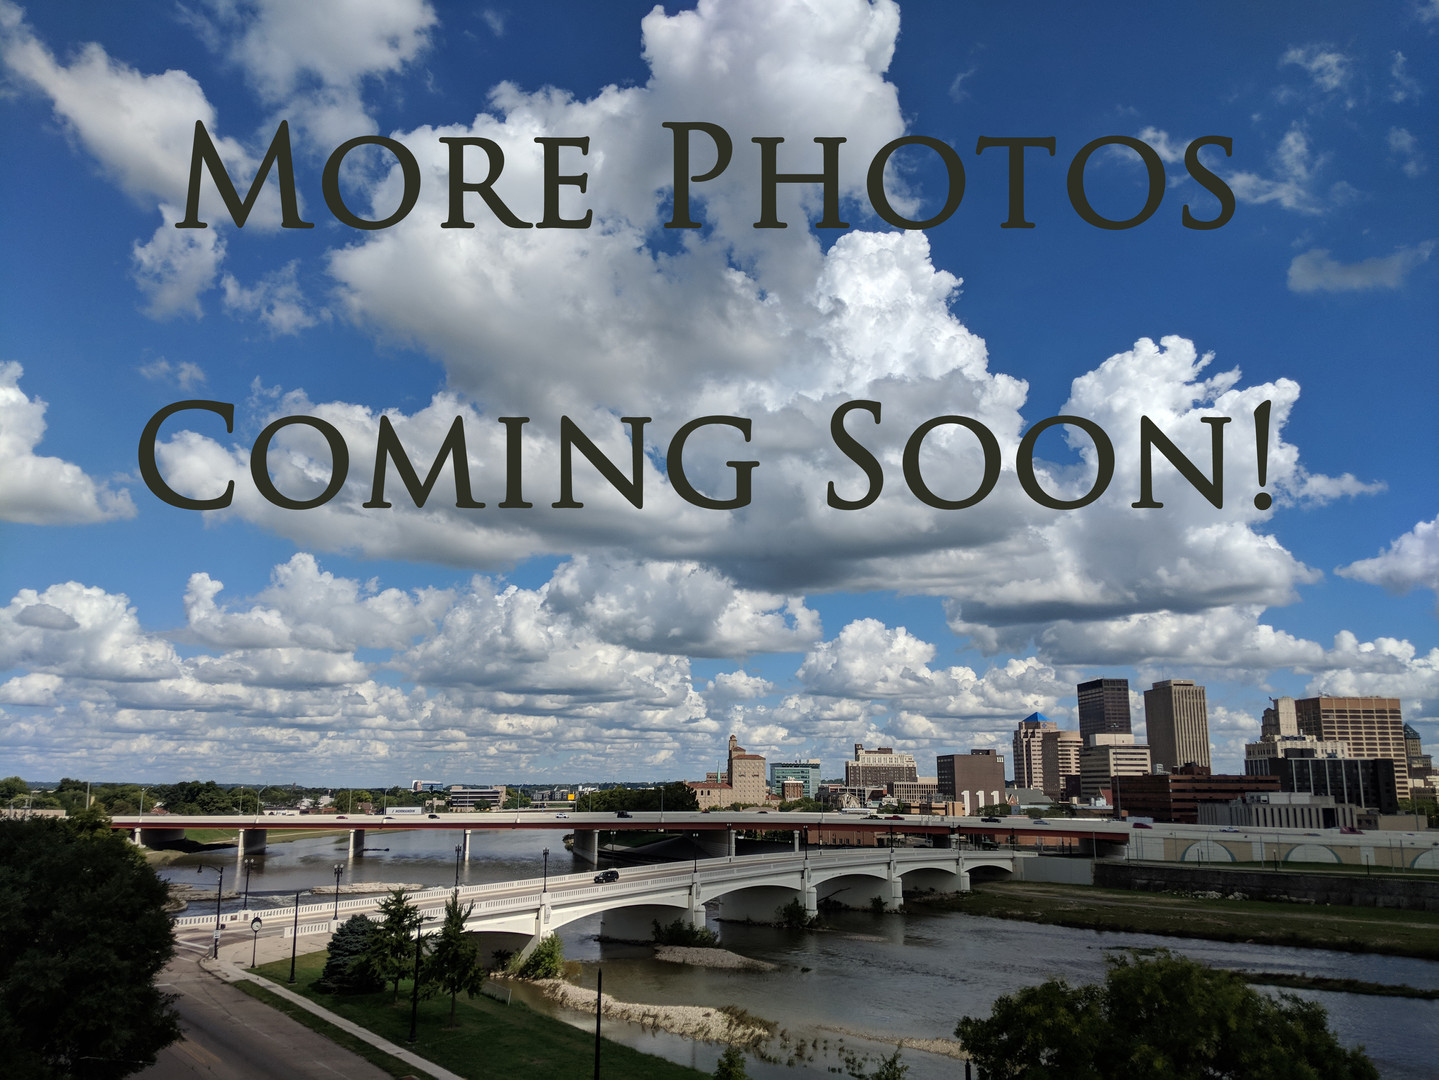 More Photos Coming SOon Cloud view copy.